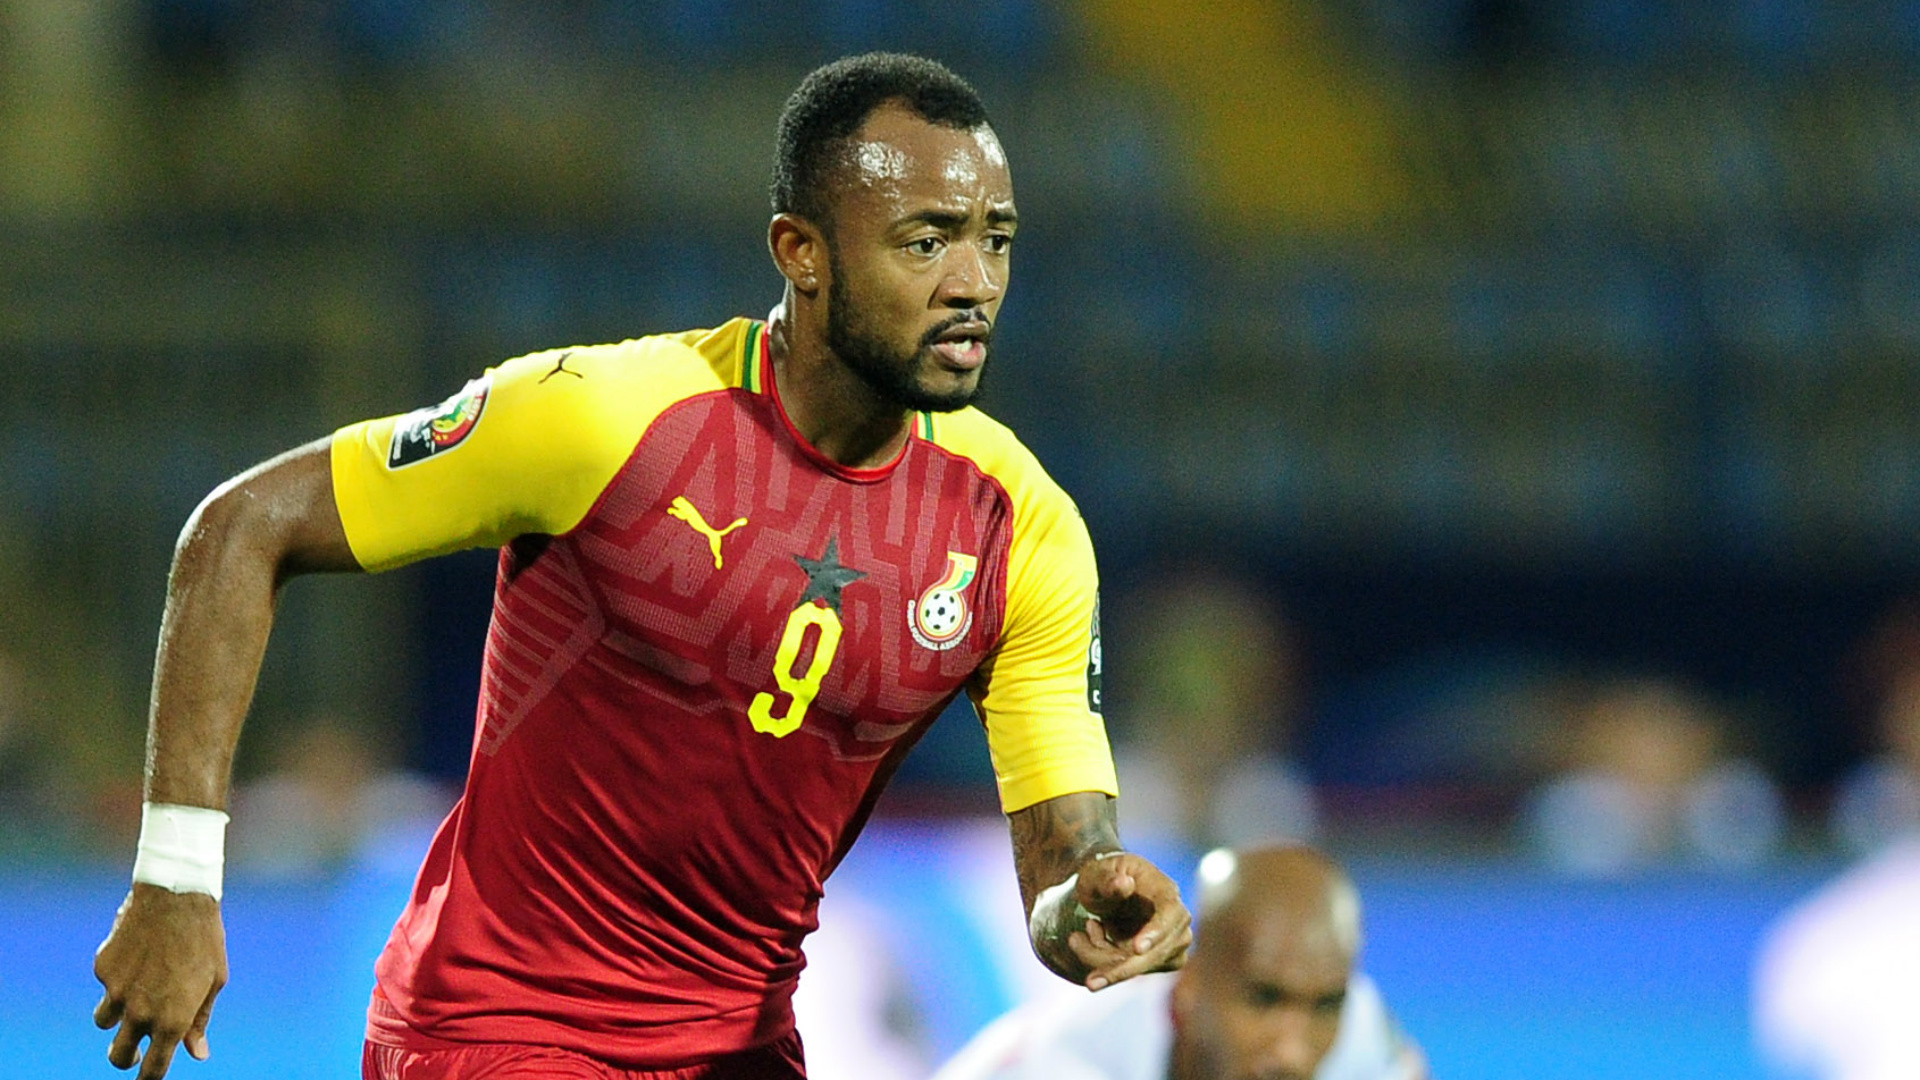 FEATURE: Jordan Ayew Deserved to Be Andre's No.2, But You Know Why He Isn't